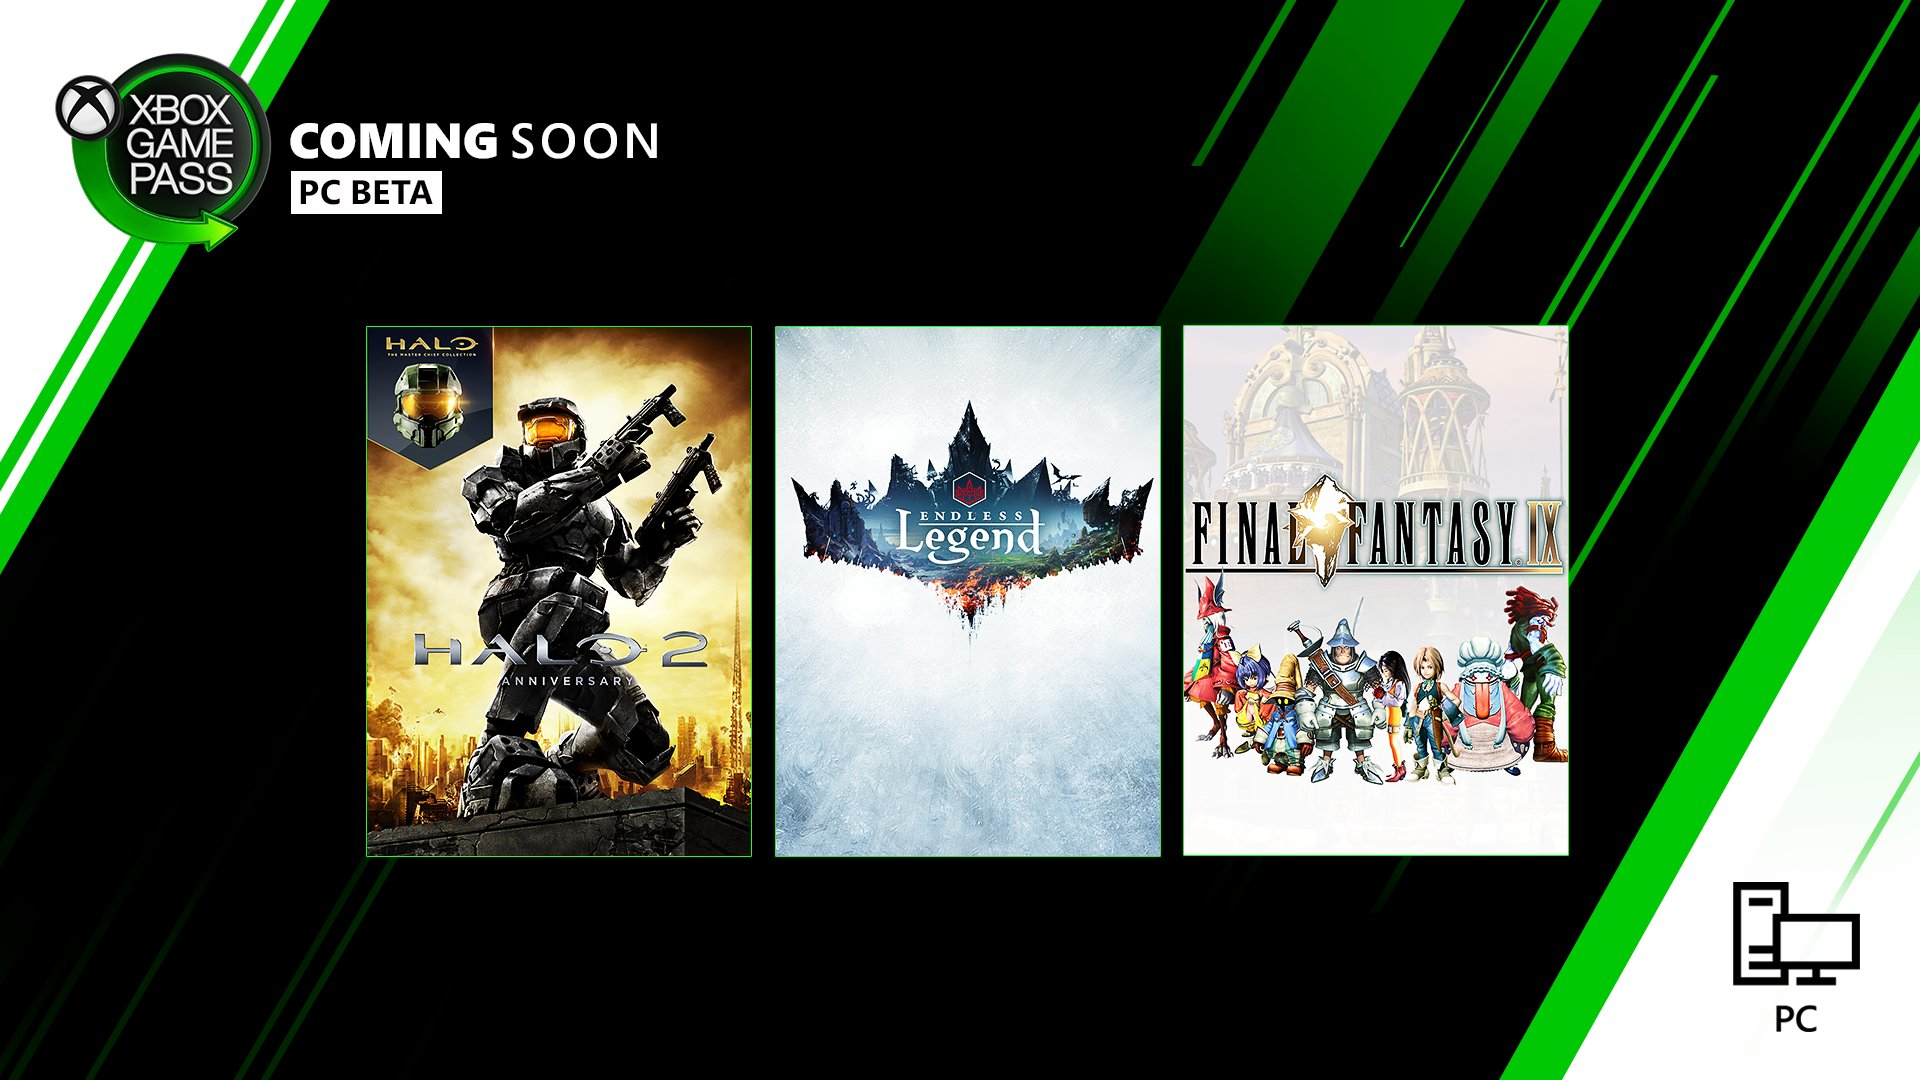 Black and green back ground with box art from 3 games. The box art games include, Halo 2 Anniversary, Endless Legend, and Final Fantasy. The Xbox Game Pass Logo is in the top left corner. Text Reads: Coming Soon. PC Beta.